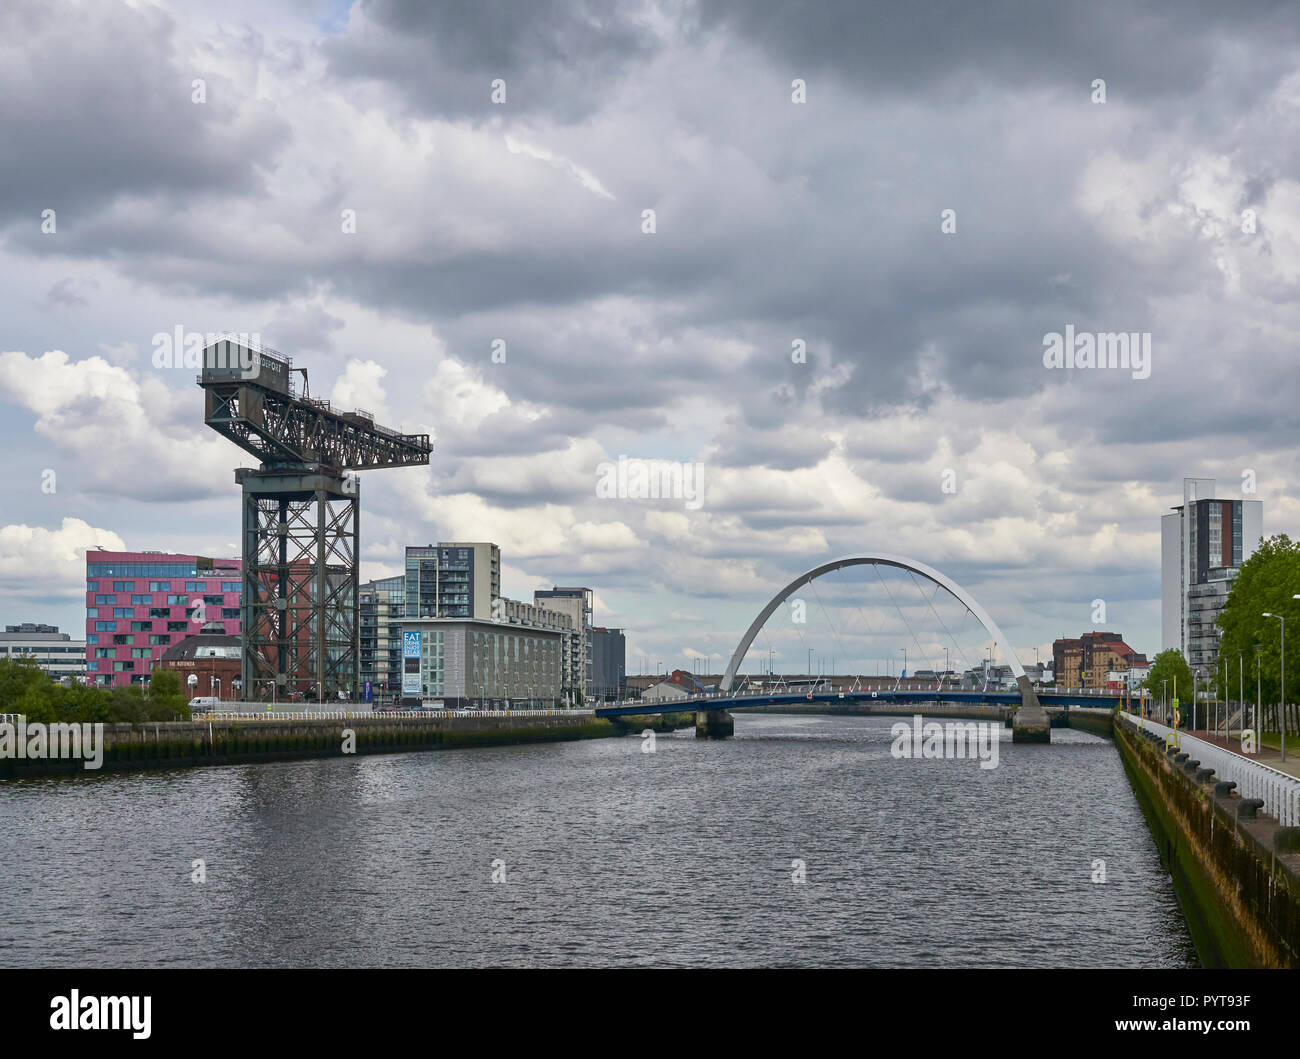 Looking East down the River Clyde towards the Finieston Crane and Squinty Bridge at Pacific Quay, Glasgow, Scotland, UK. Stock Photo